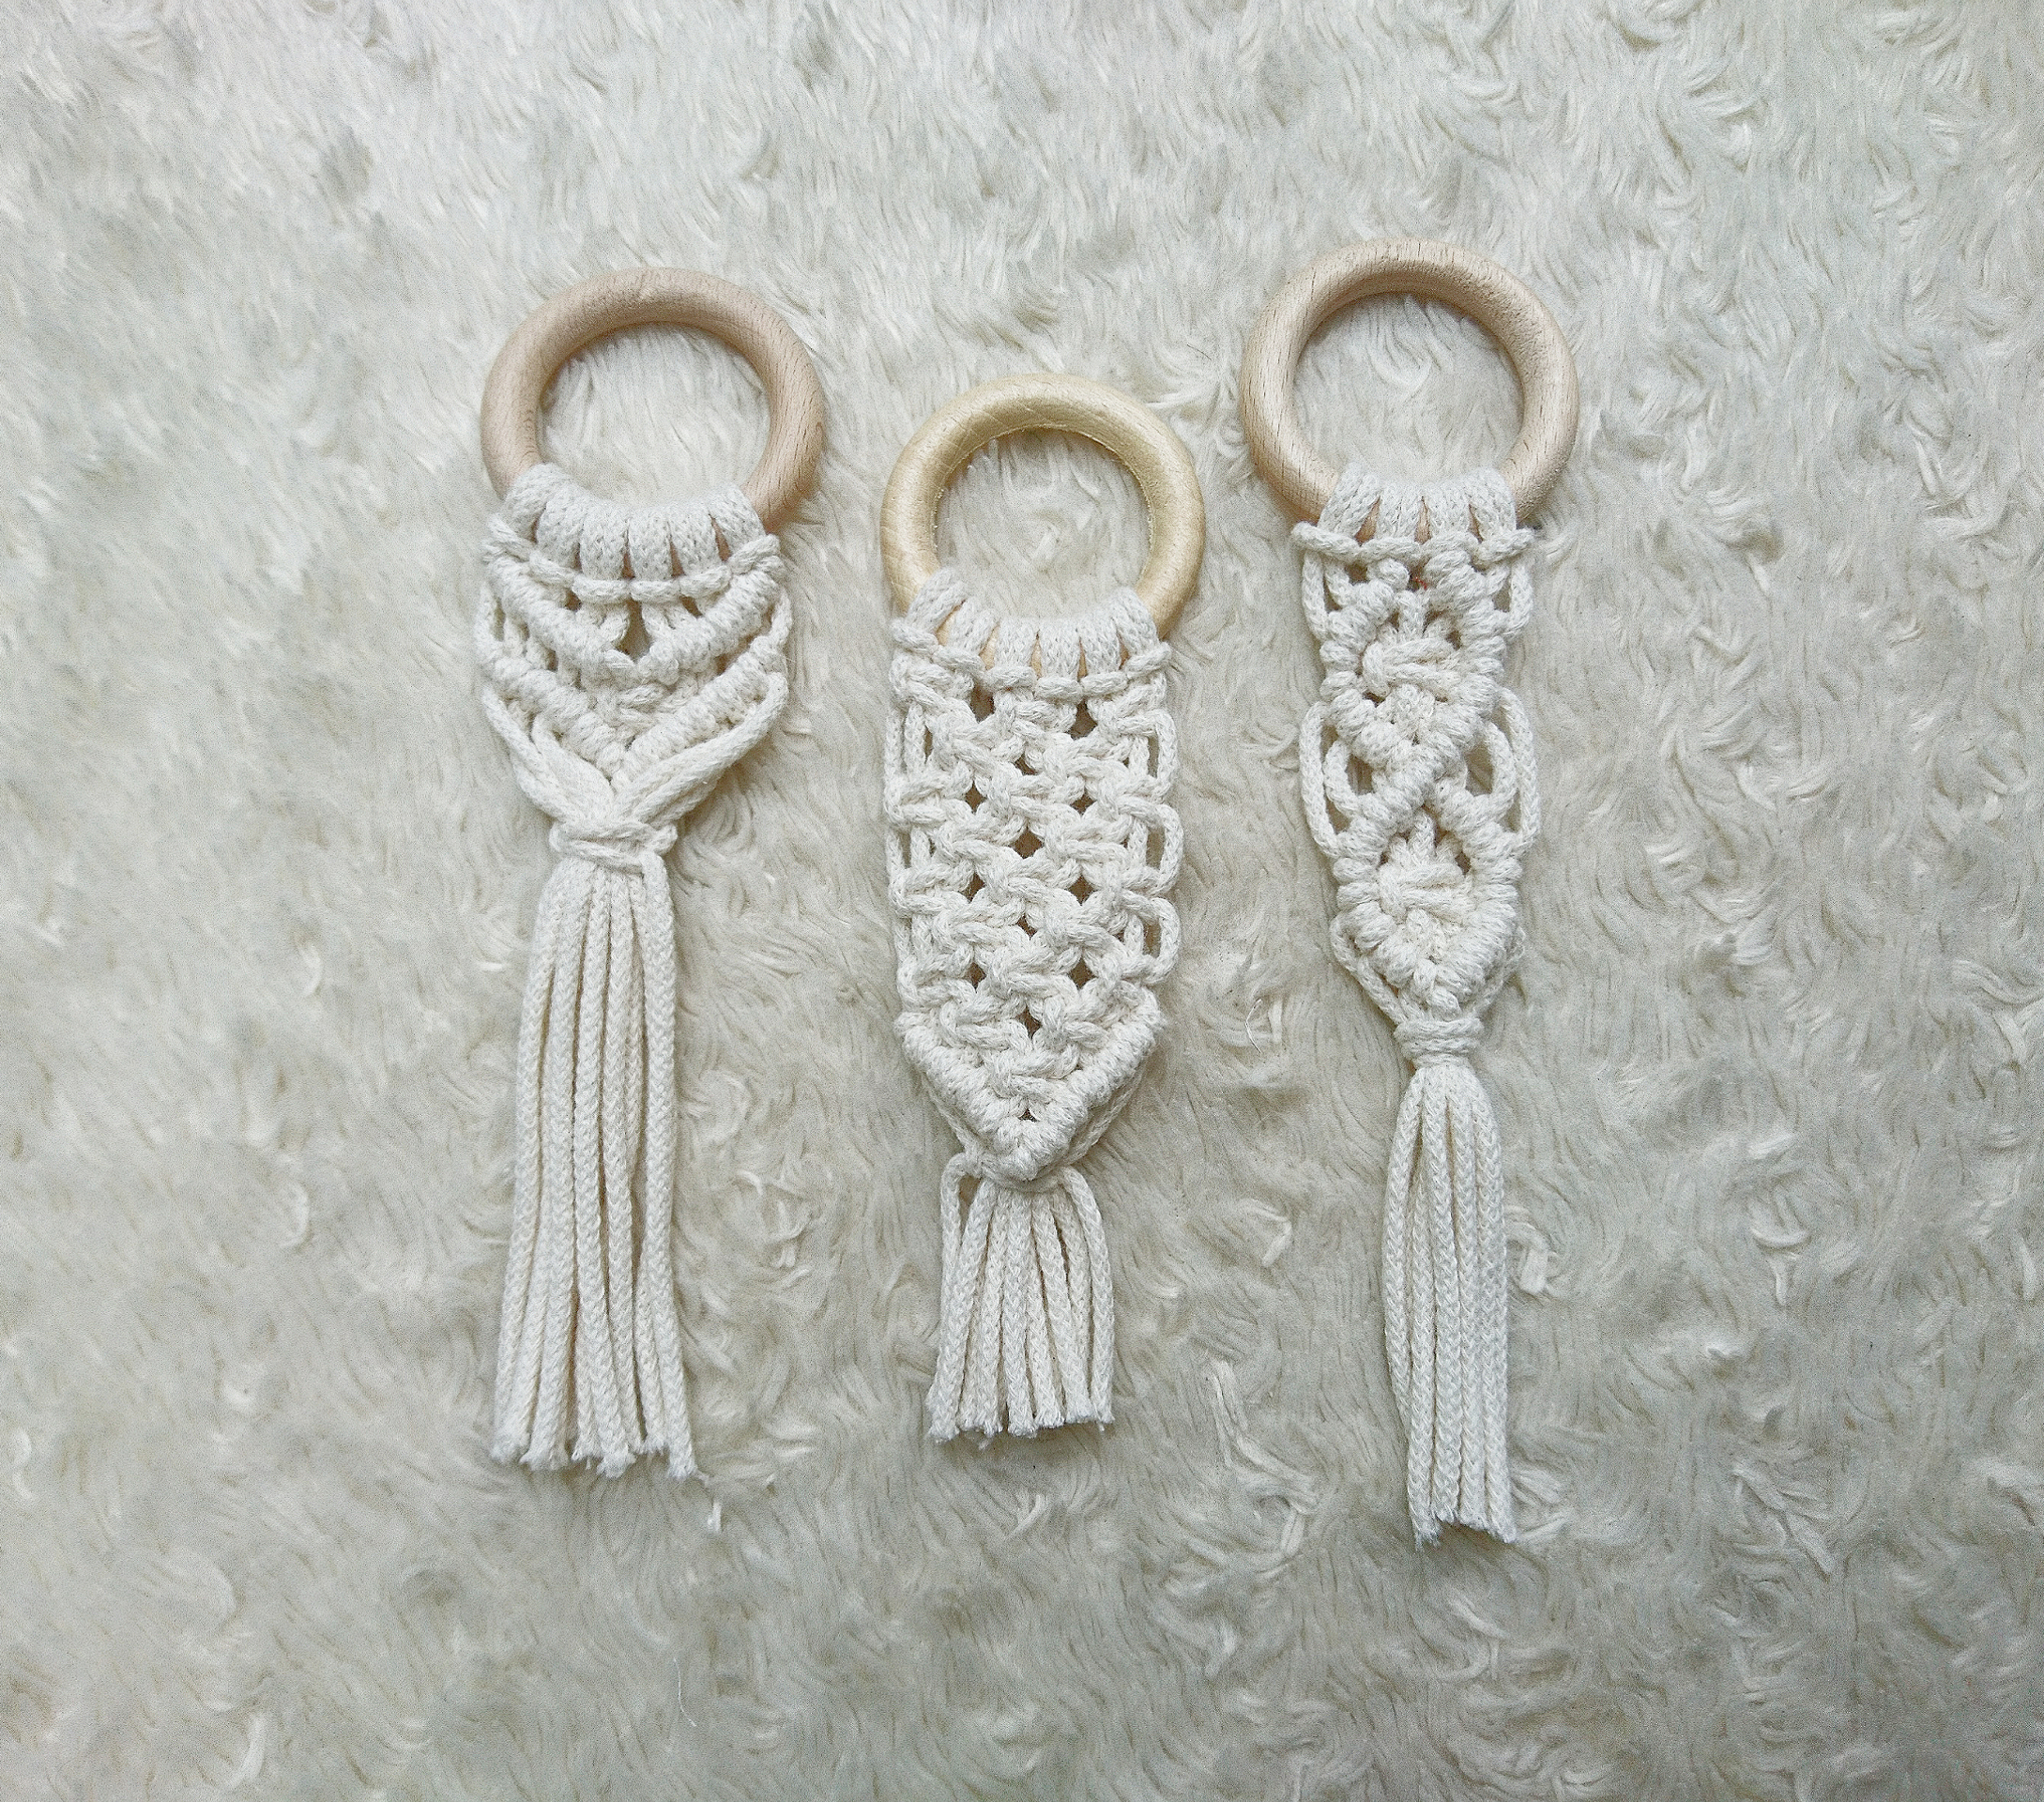 MACRAME TEETHER/ BABYROOM DECOR